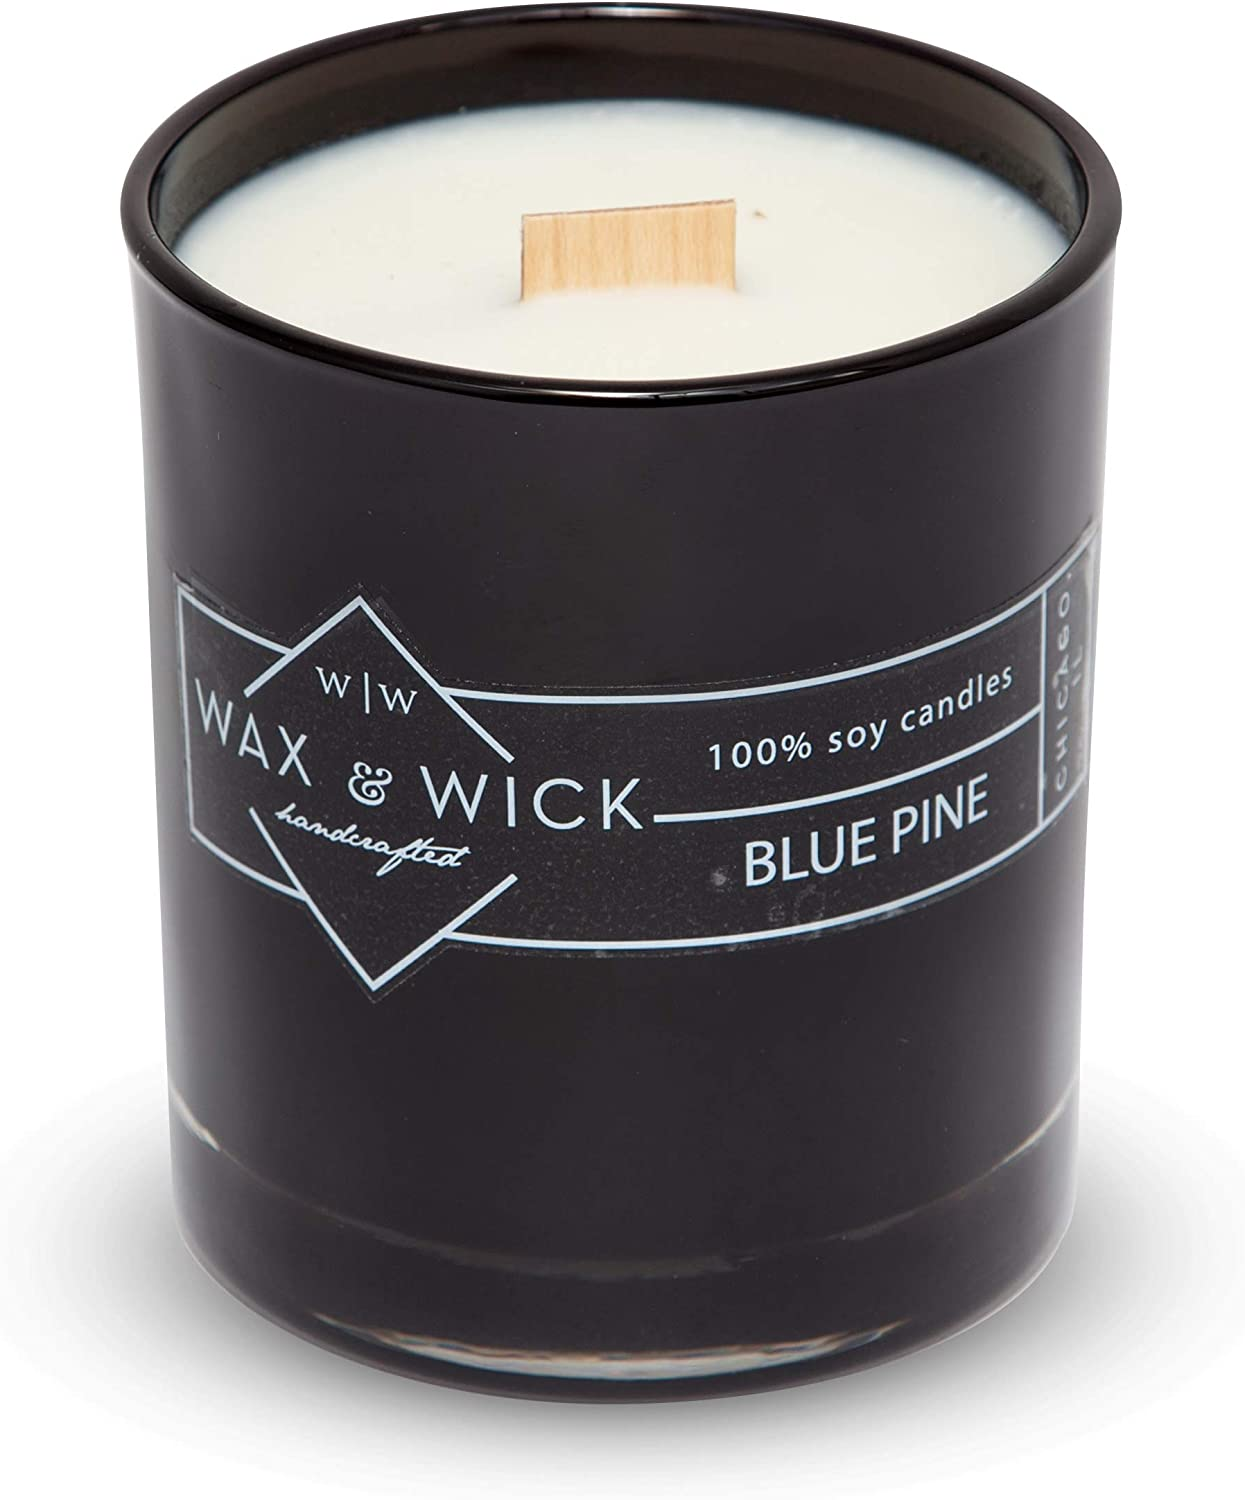 Scented Soy Candle: 100% Pure Soy Wax with Wood Double Wick   Burns Cleanly up to 60 Hrs   Blue Pine Scent with Notes of Citrus, Cedarwood, and Pine.   12 oz. Black Jar by Wax and Wick